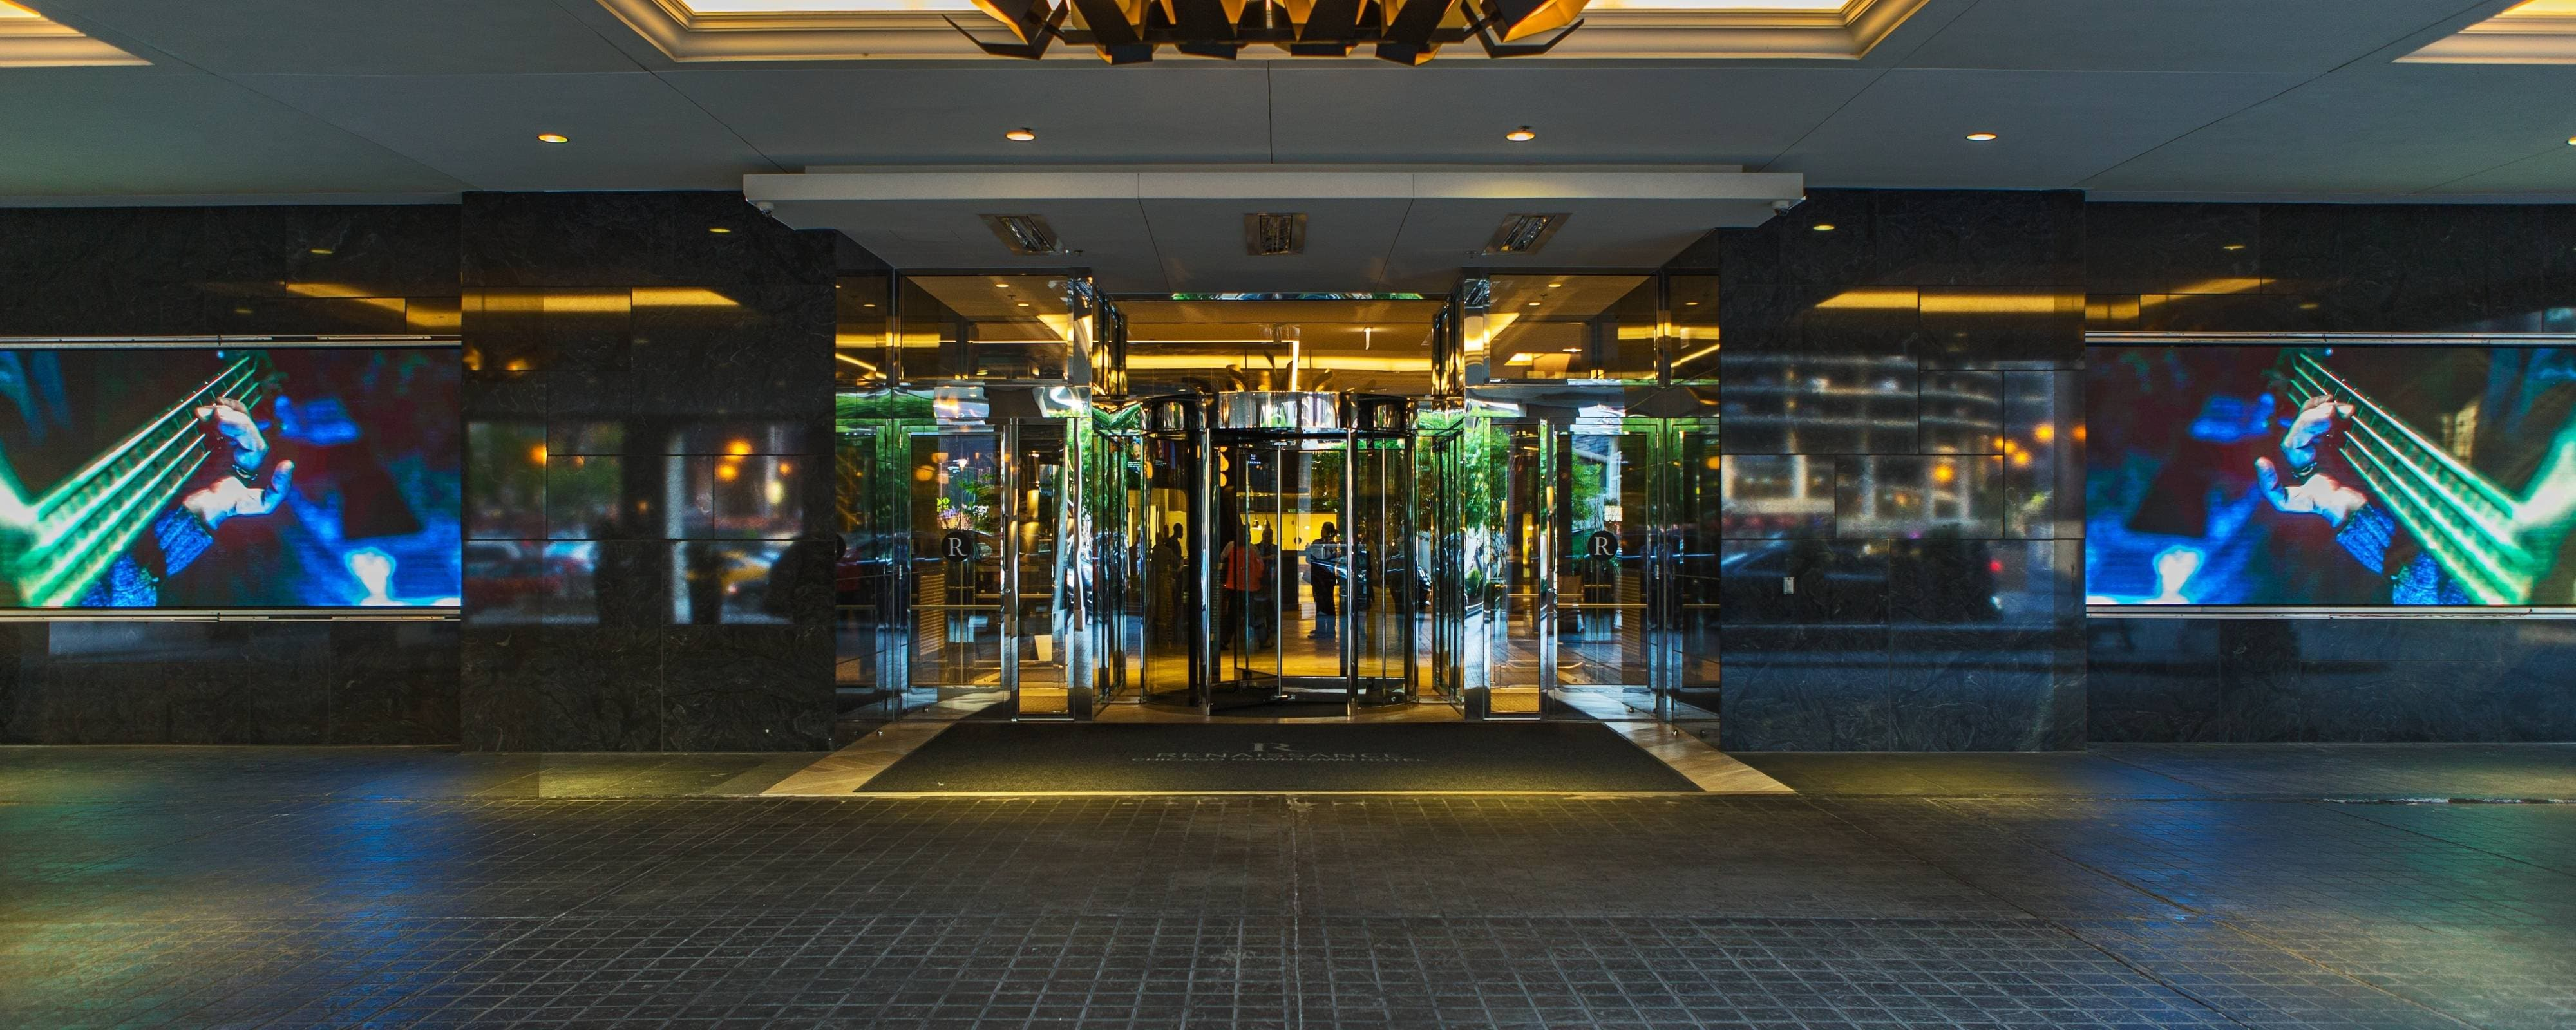 Chicago Hotel Entrance